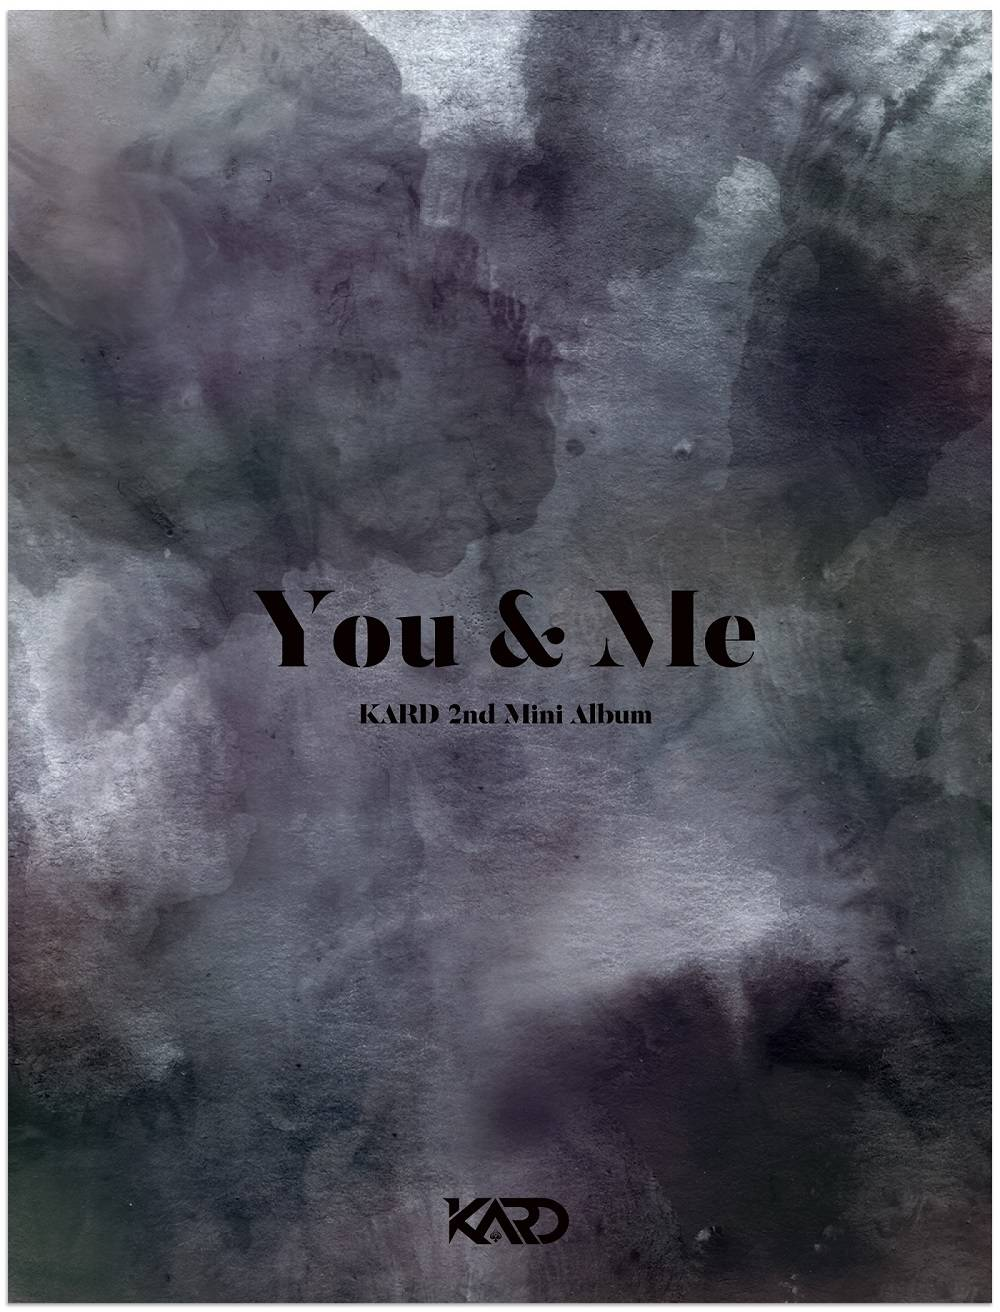 KARD - 2nd Mini Album: You & Me CD